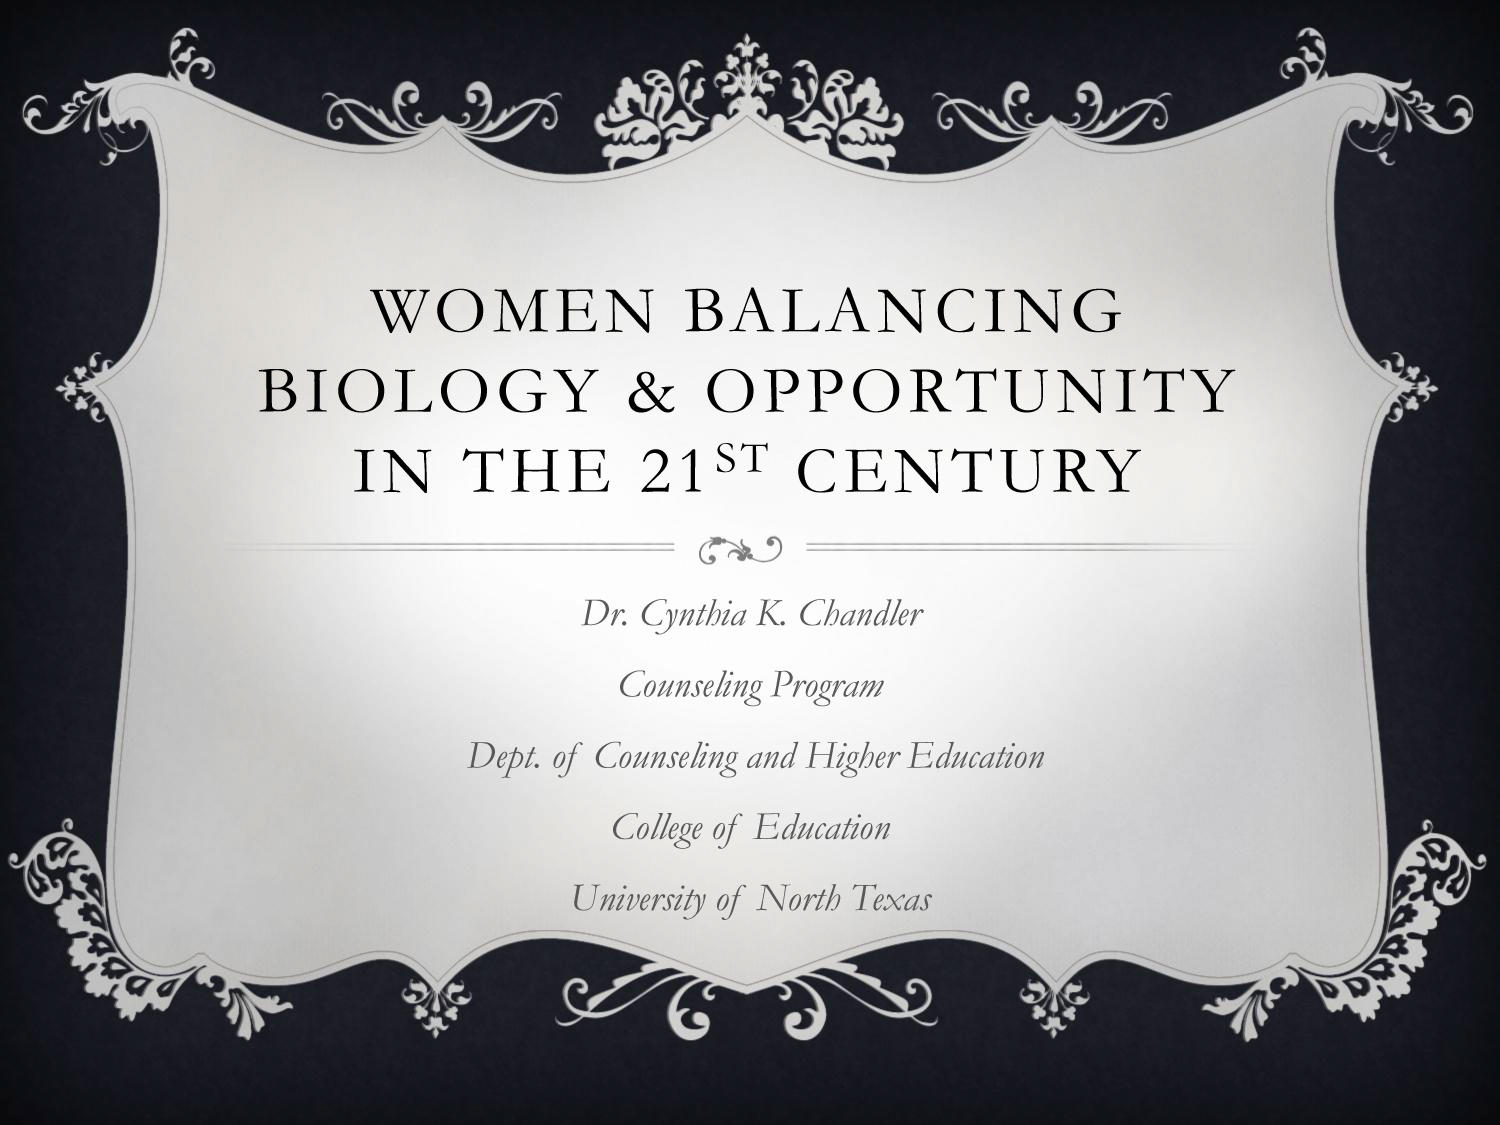 Women Balancing Biology and Opportunity in the 21st Century                                                                                                      [Sequence #]: 1 of 13